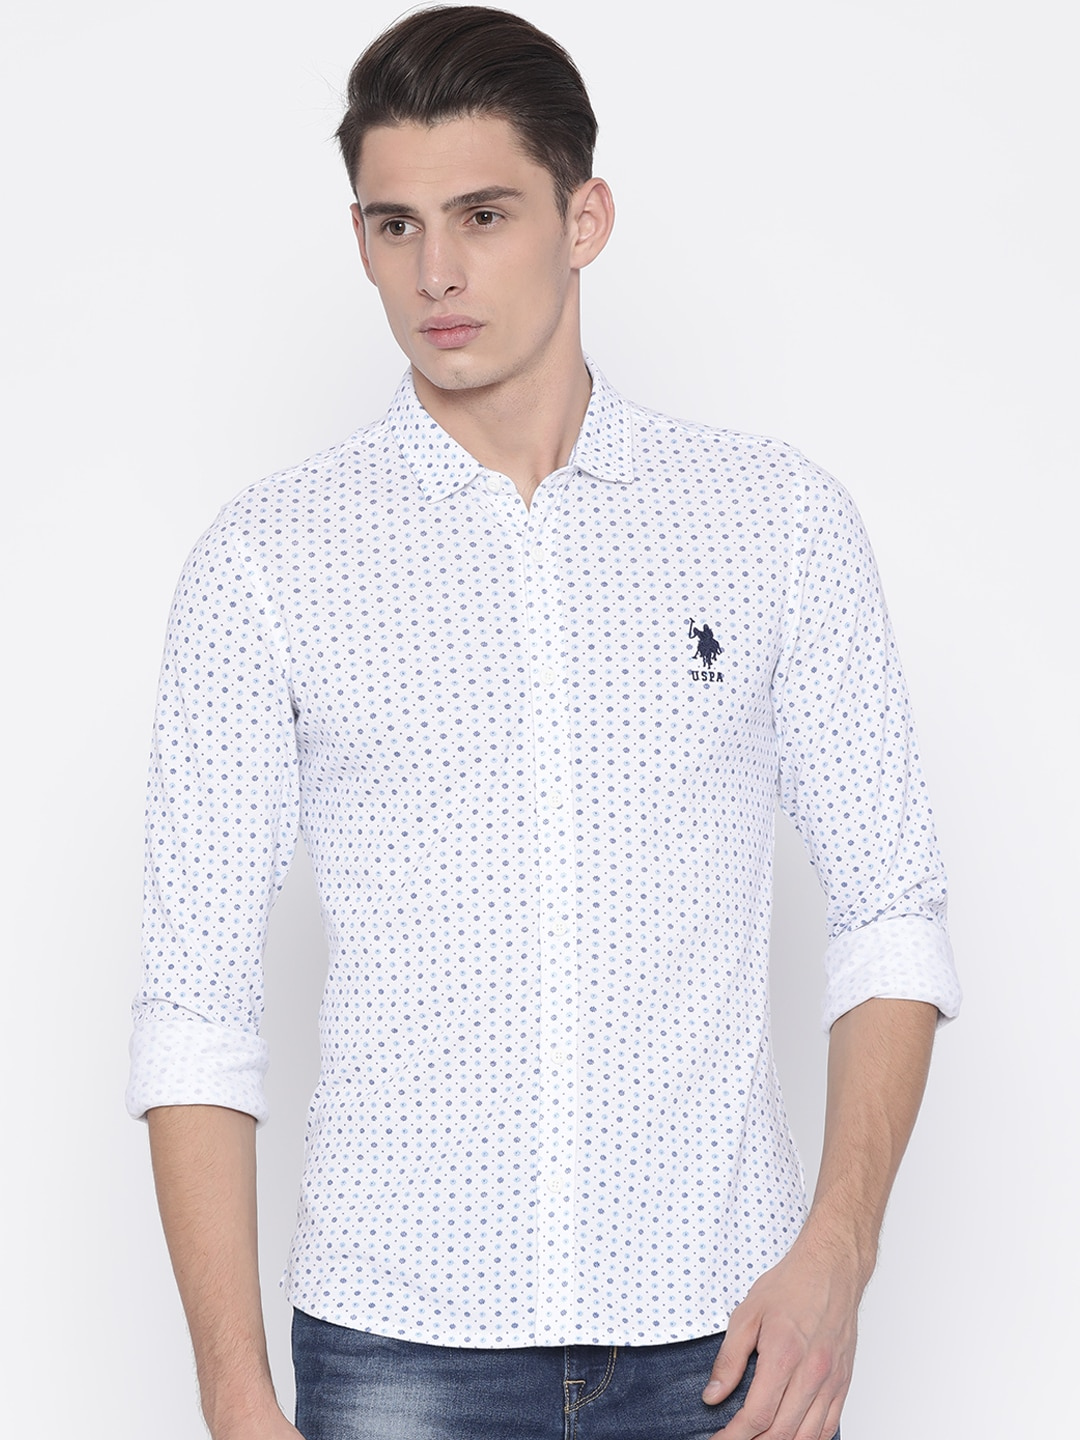 U.S. Polo Assn. Men White & Blue Regular Fit Printed Casual Shirt image